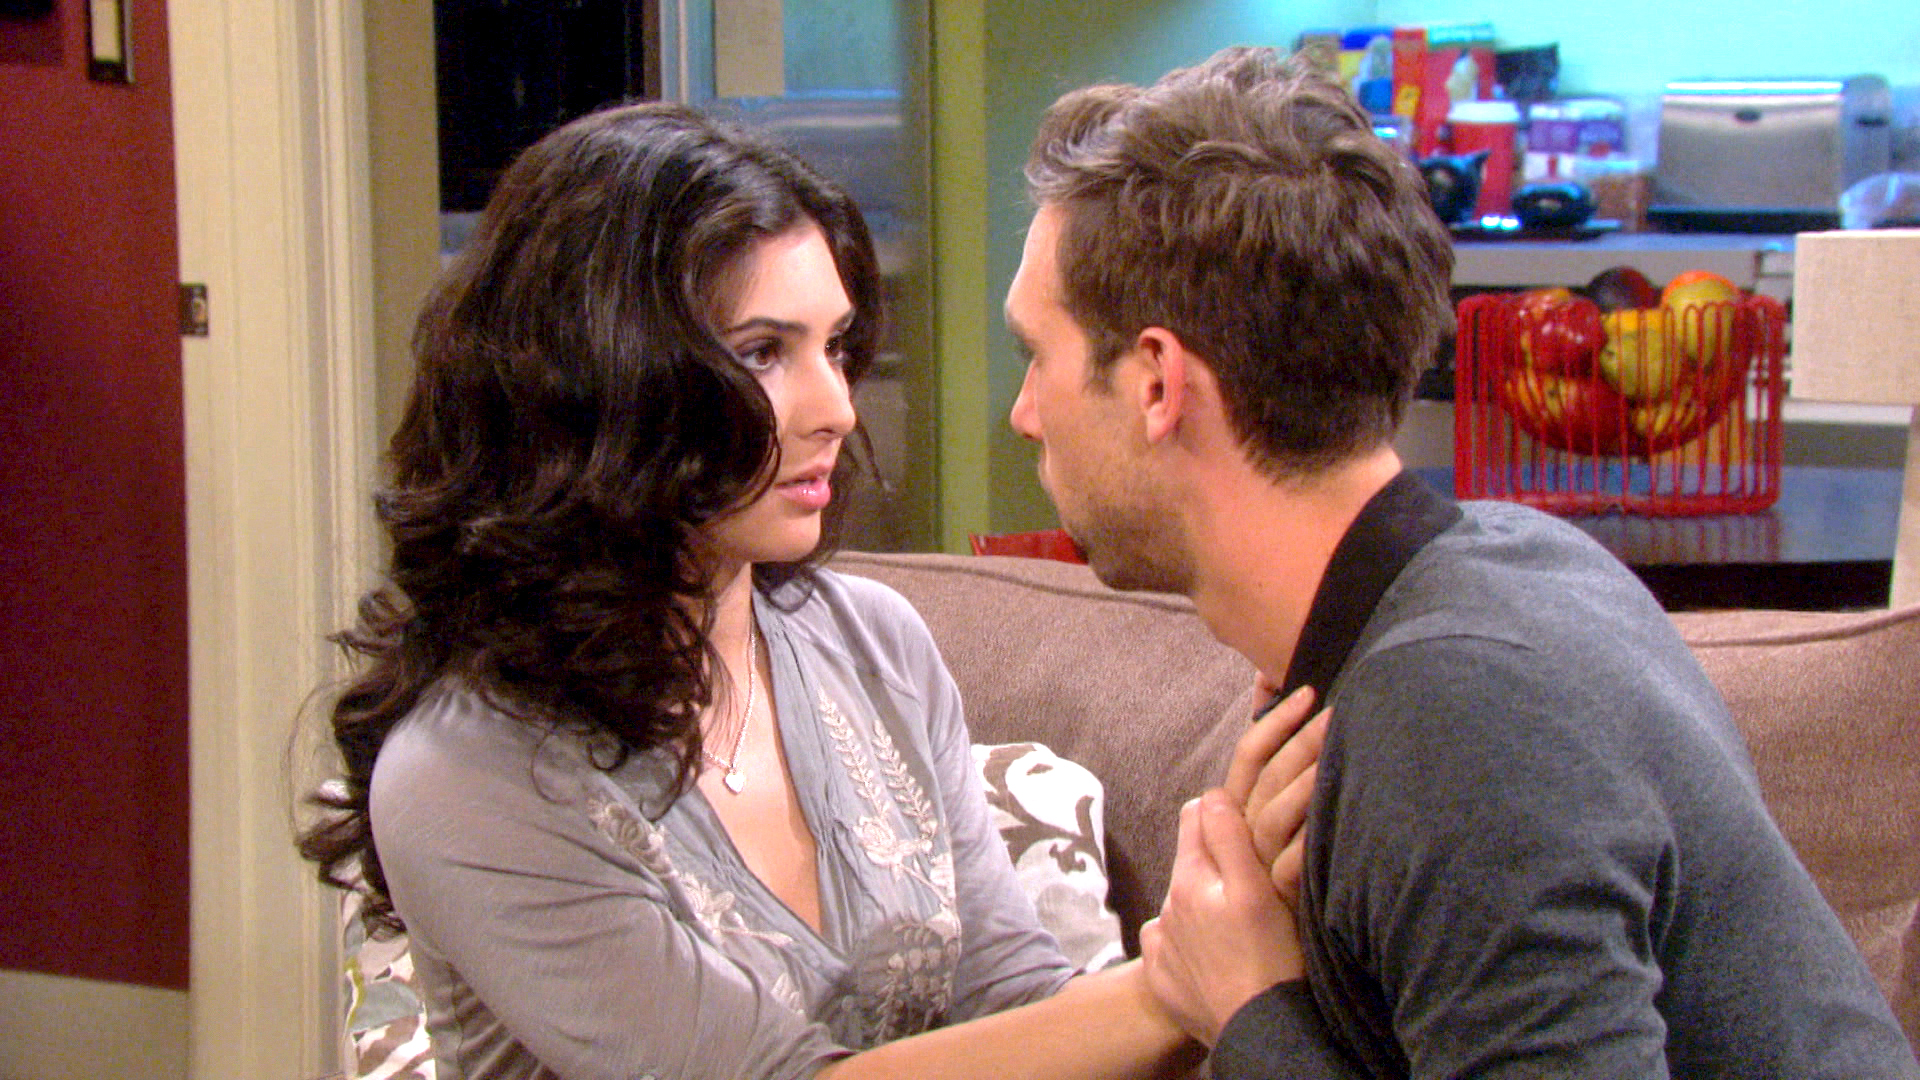 Things heat up for Nick and Gabi.